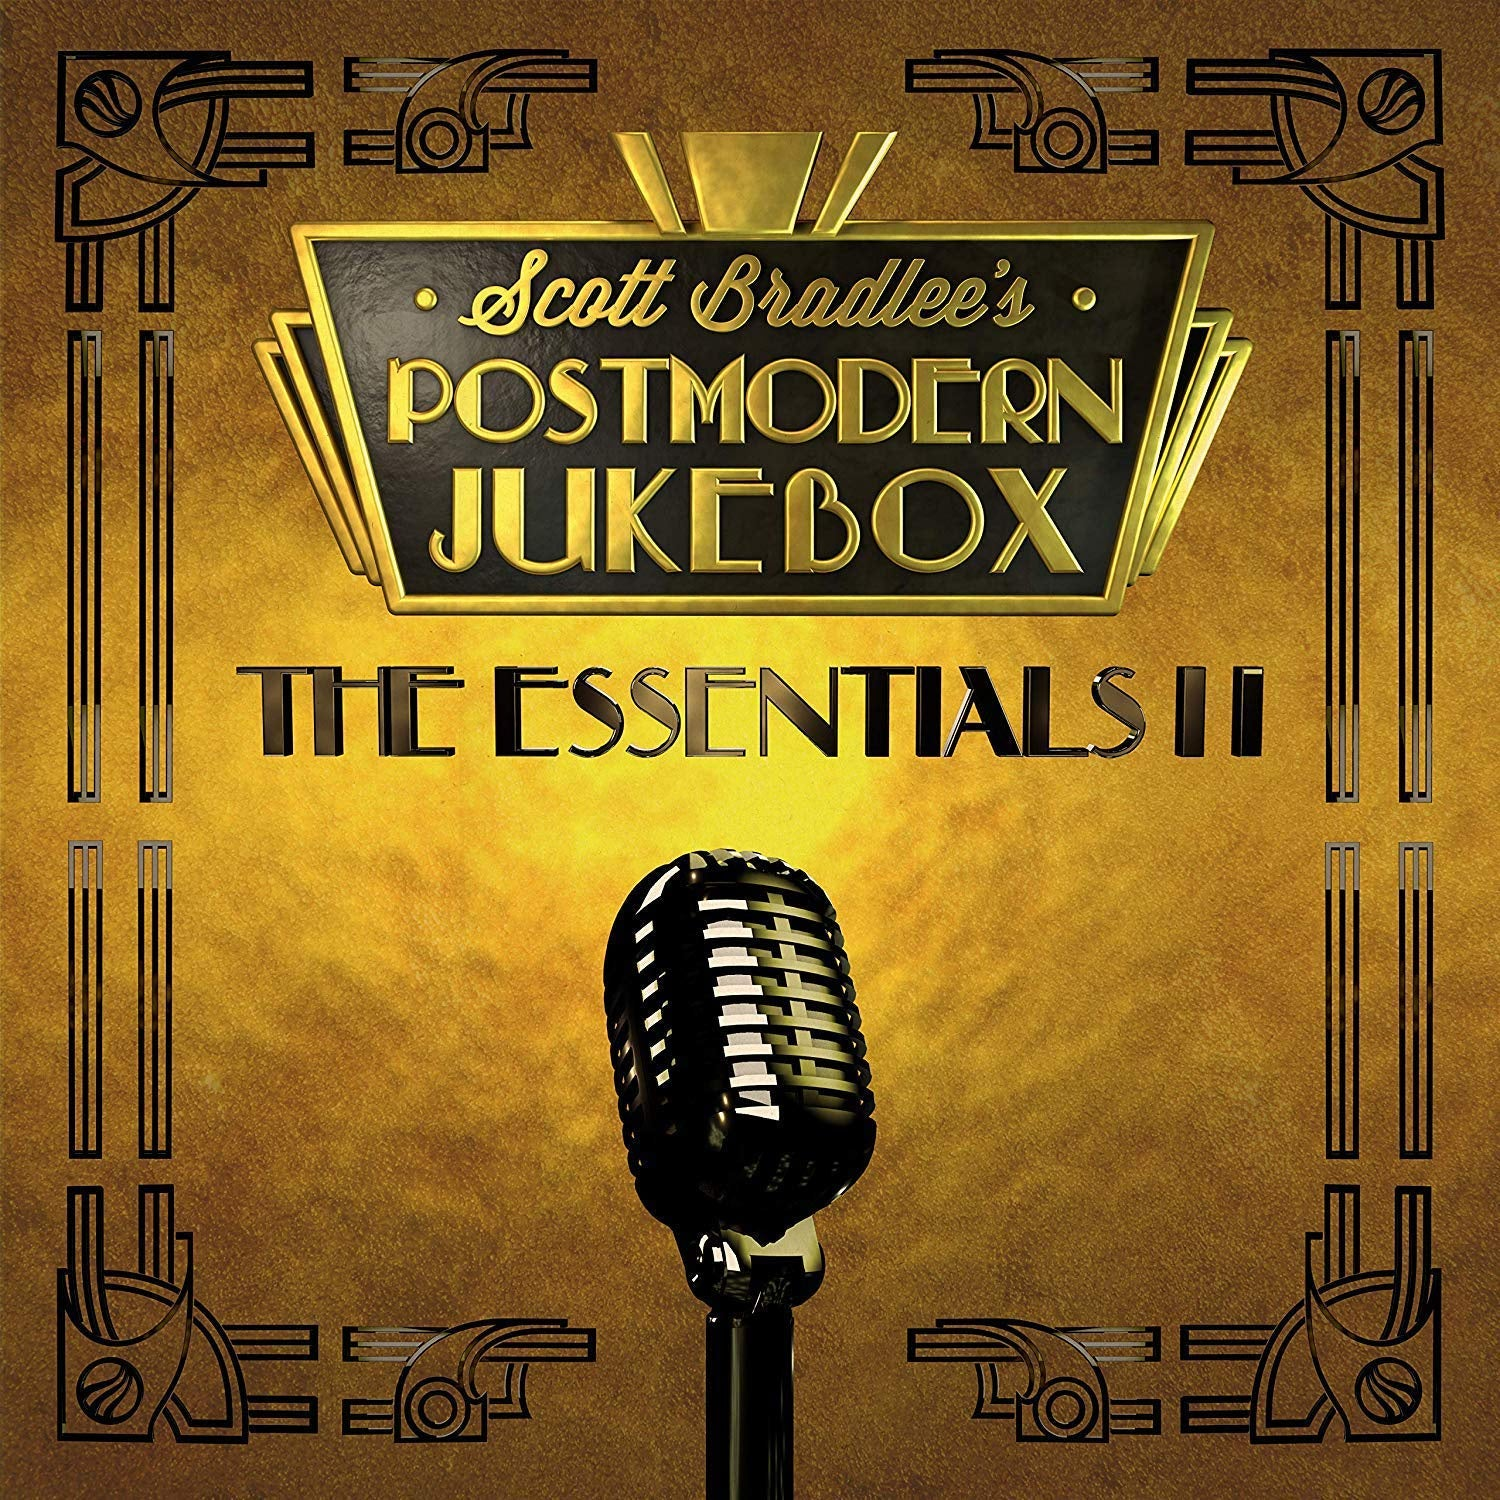 Scott Bradlee's Postmodern Jukebox —Essentials II - New Vinyl 2 Lp 2018 Concord Records Compilation - Big Band Jazz Covers